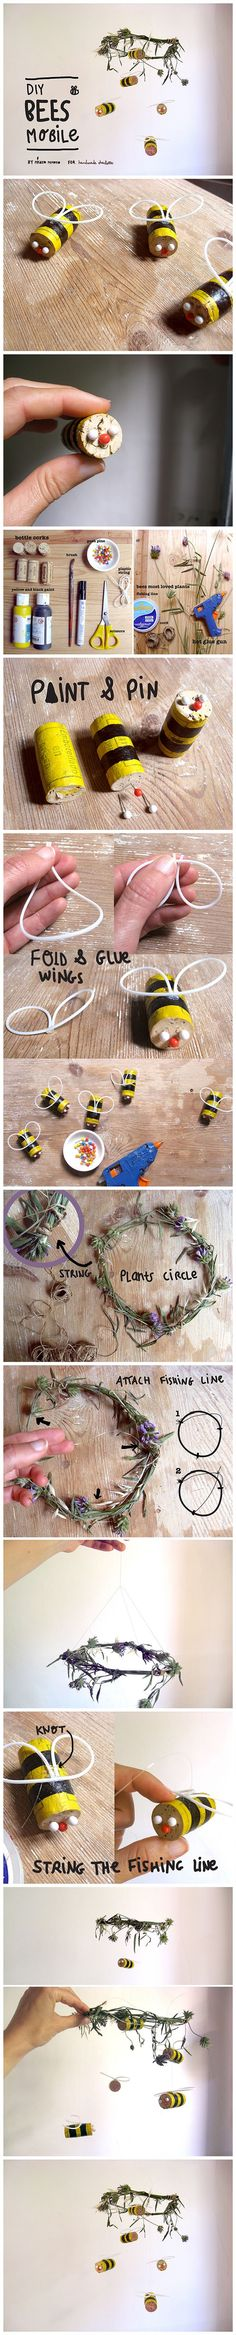 #Diy Cork #Bumblebee #Mobile #Tutorials Let's make an eco-conscious project to celebrate bees! This fun activity helps kids learn about the importance of bees, to love and protect them. The mobile is very cute and easy to make, and you'll enjoy watching the bees fly.